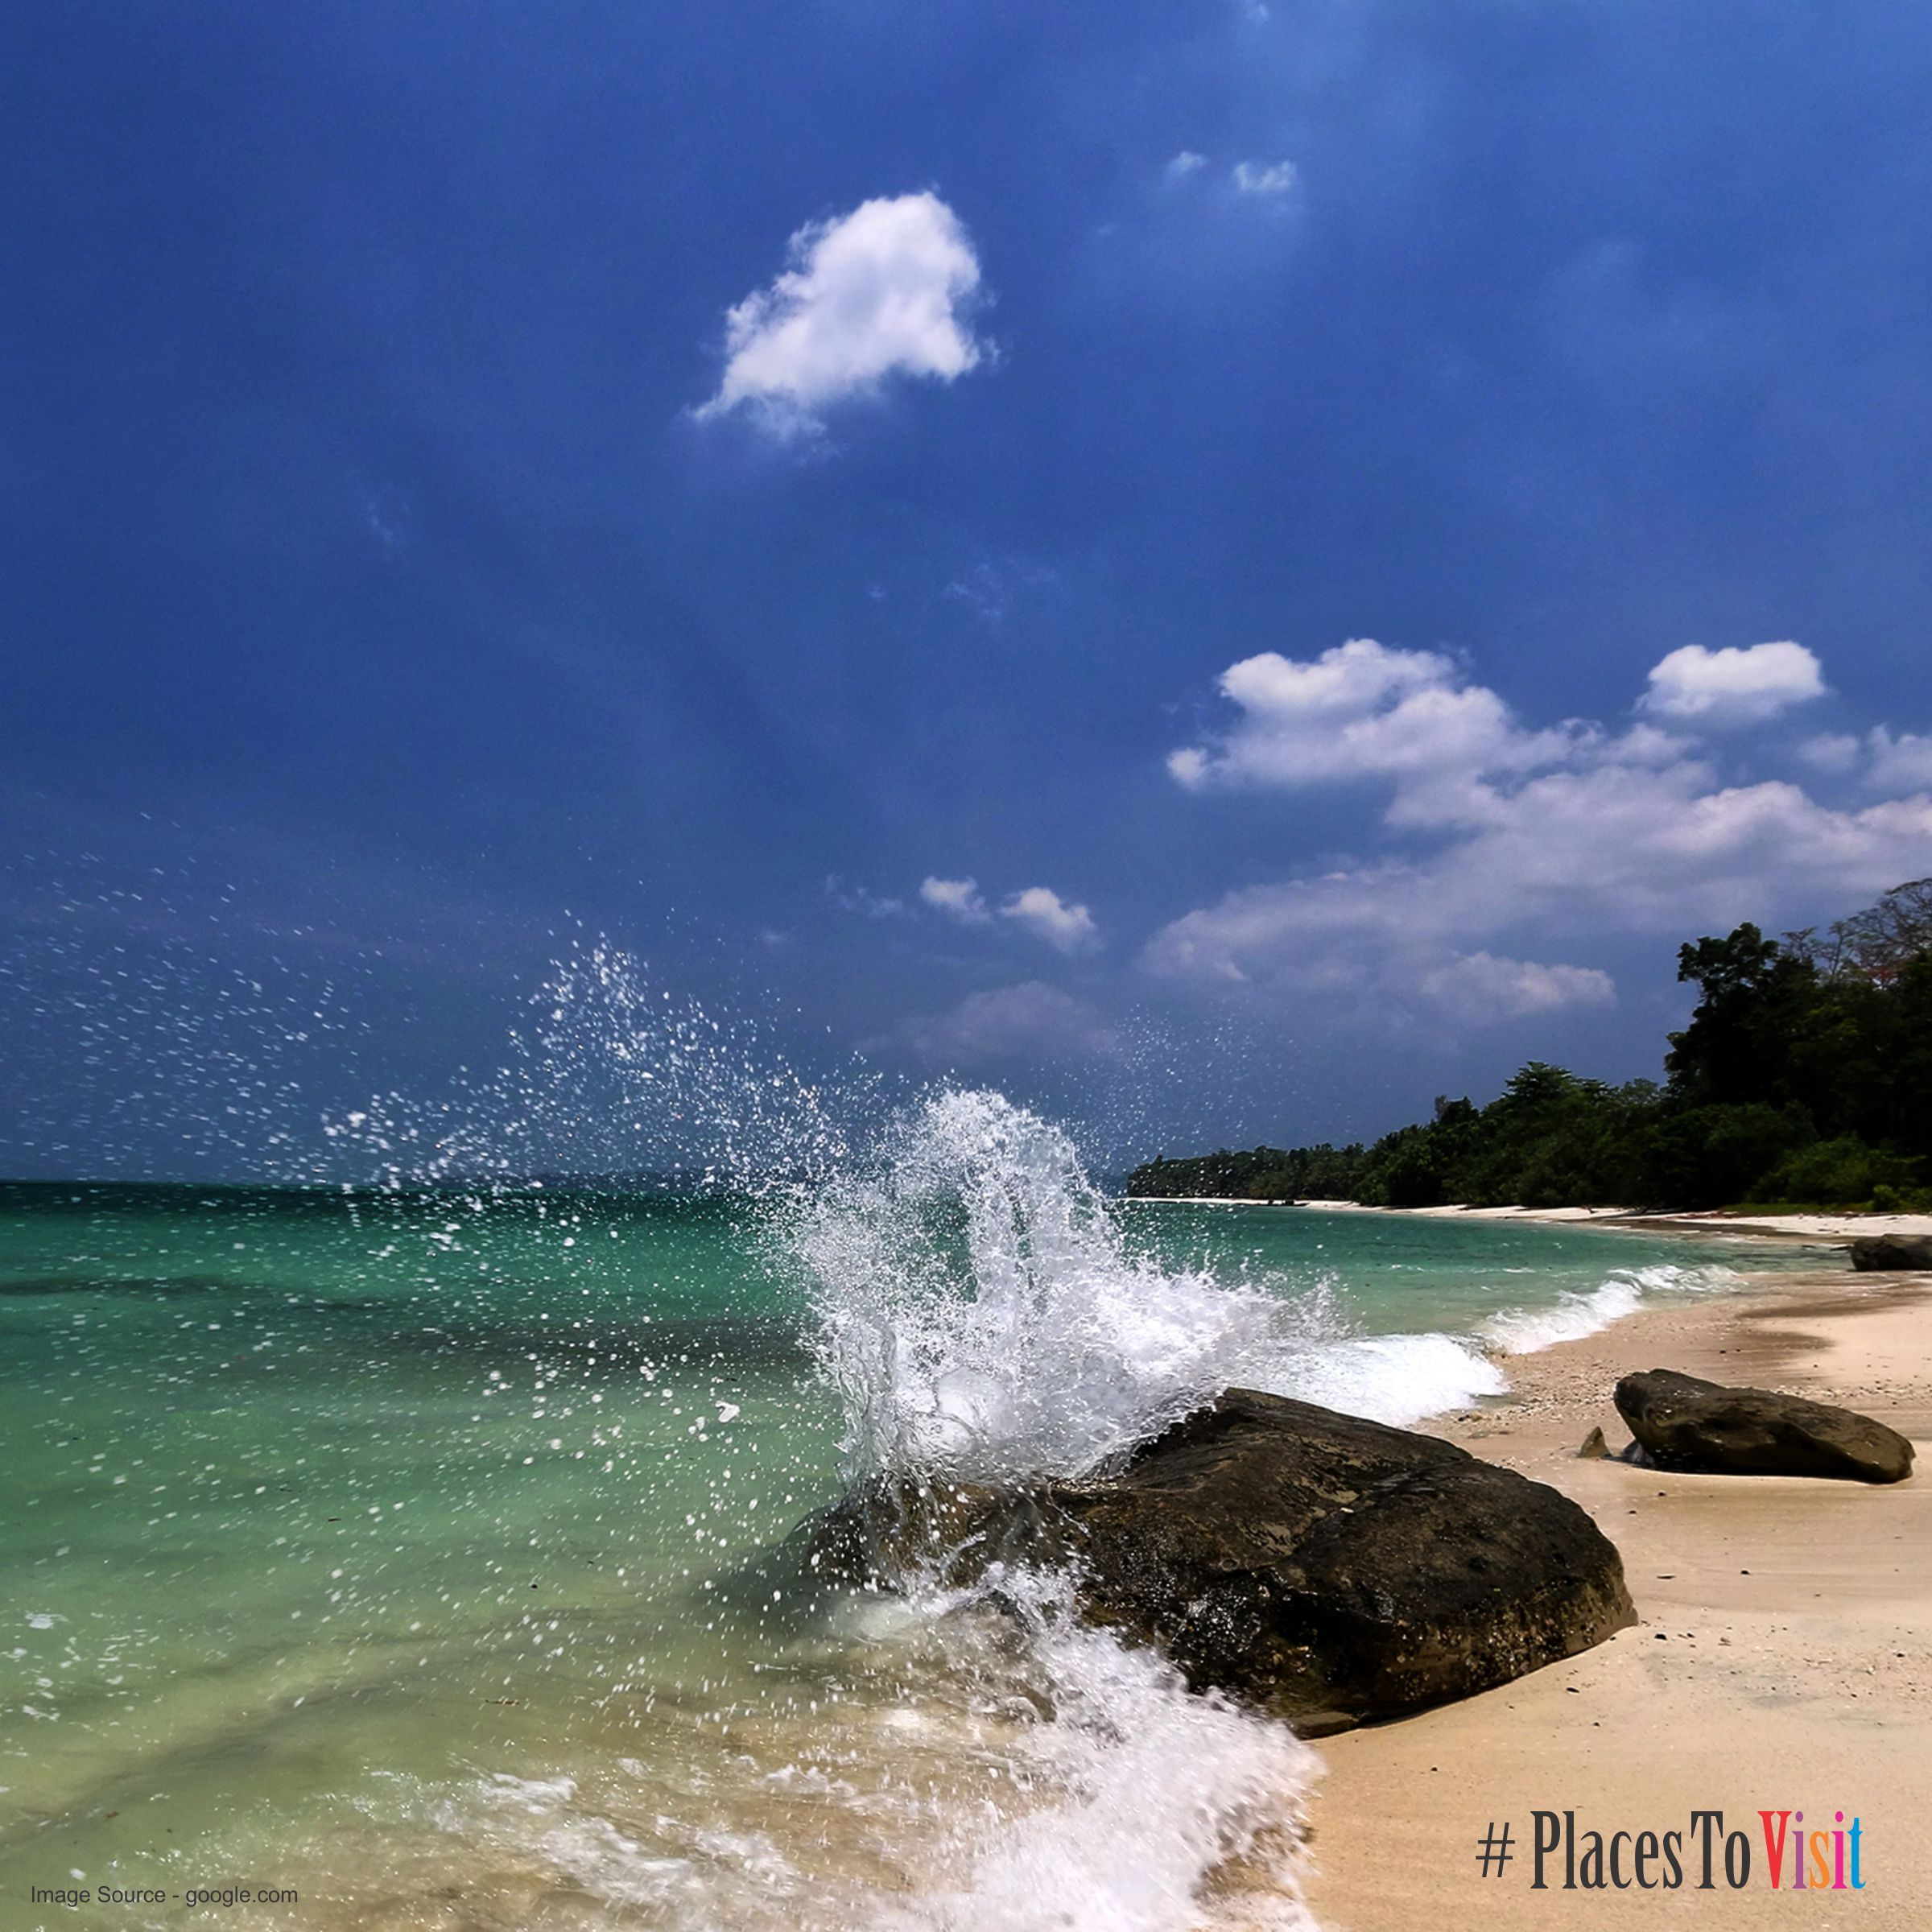 Havelock Island: #PlaceToVisit With Four-hour Ferry Drive Away From